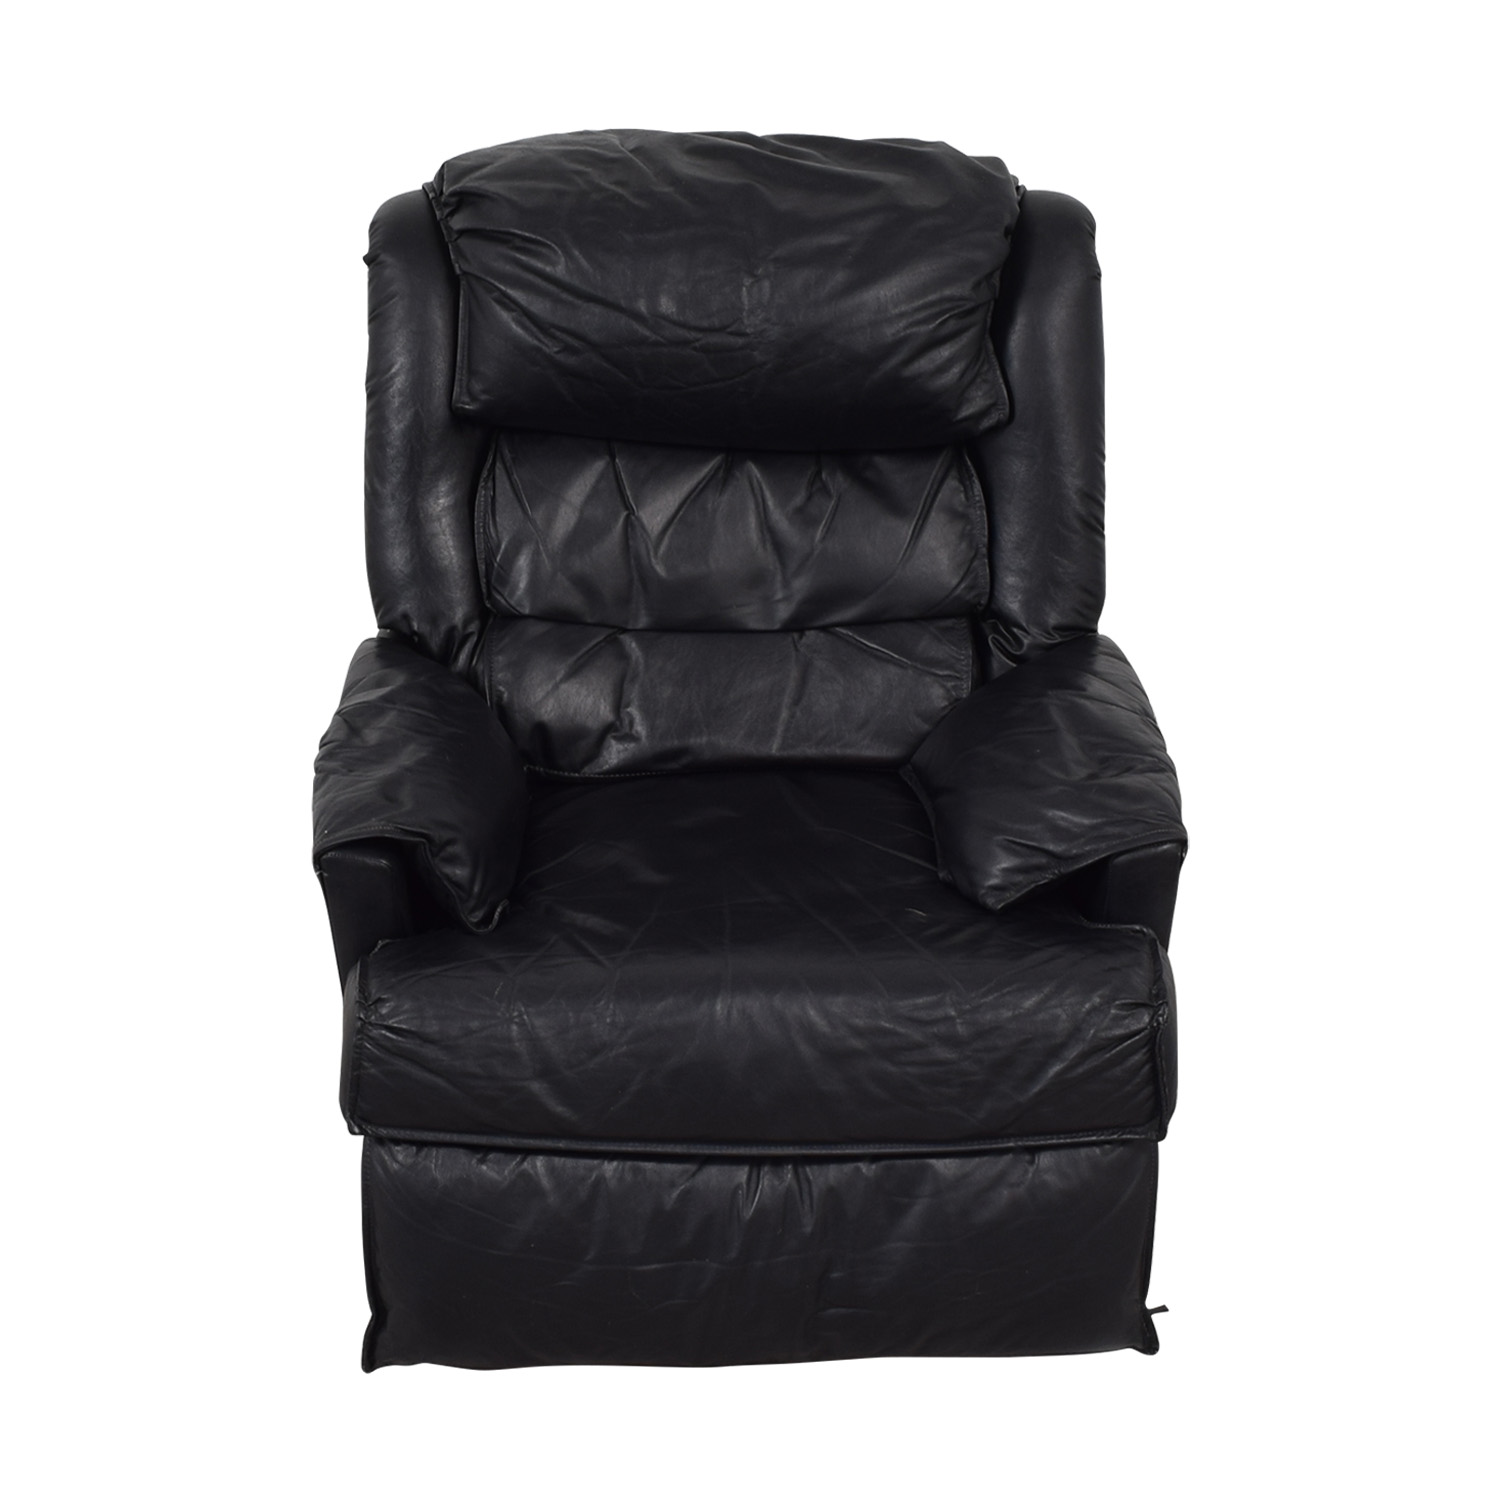 buy Barcalounger Leather Recliner Barcalounger Recliners